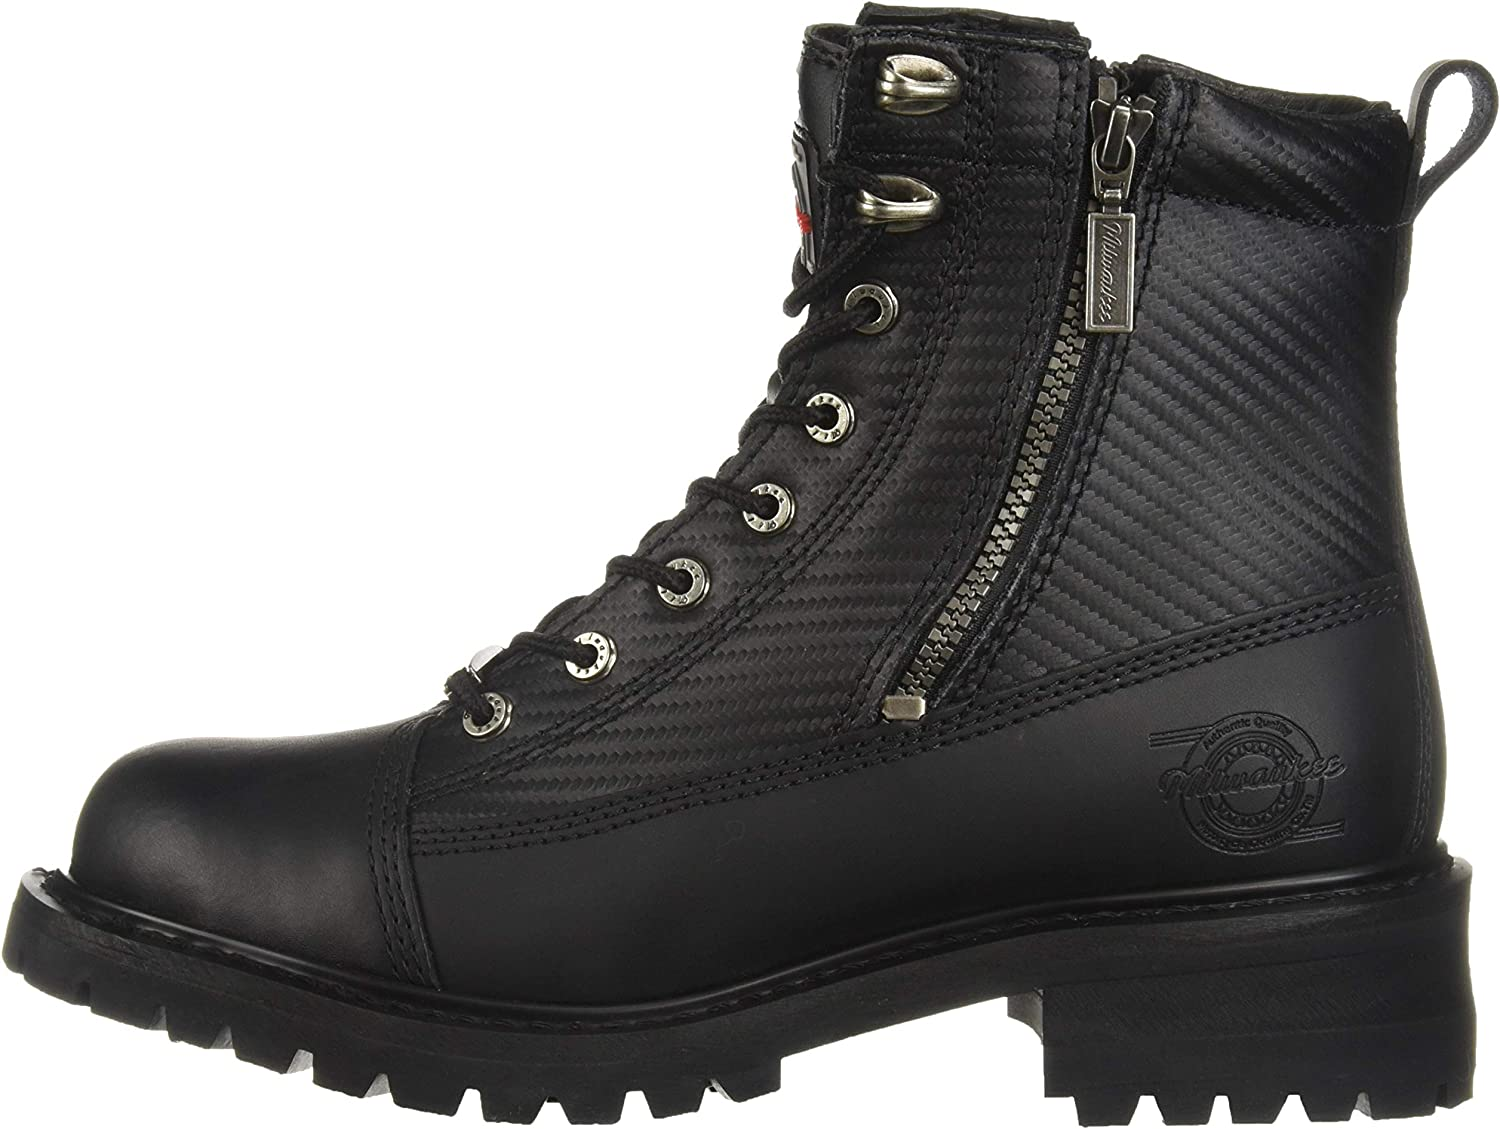 Milwaukee Motorcycle Clothing Company Accelerator Leather Mens Motorcycle Boots Black, Size 8D